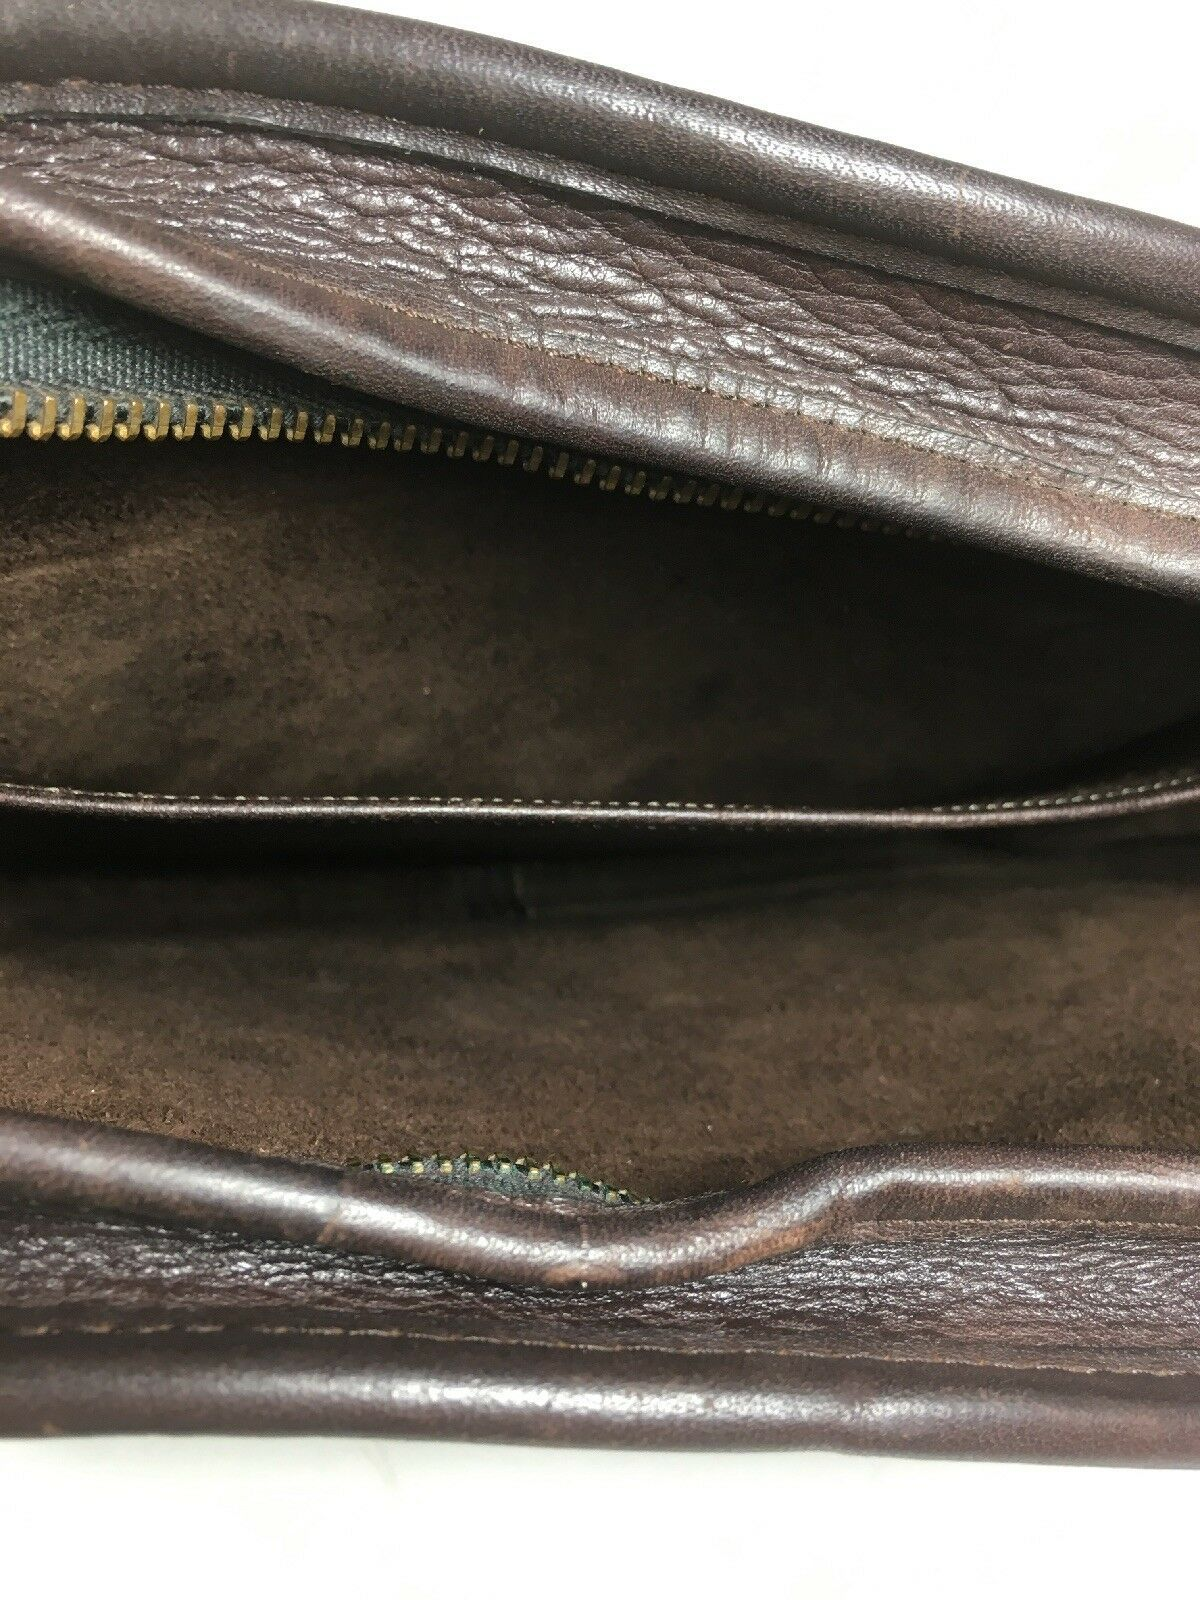 Coach Vintage Small Dark Brown Leather Shoulder Bag Made In New York City, USA